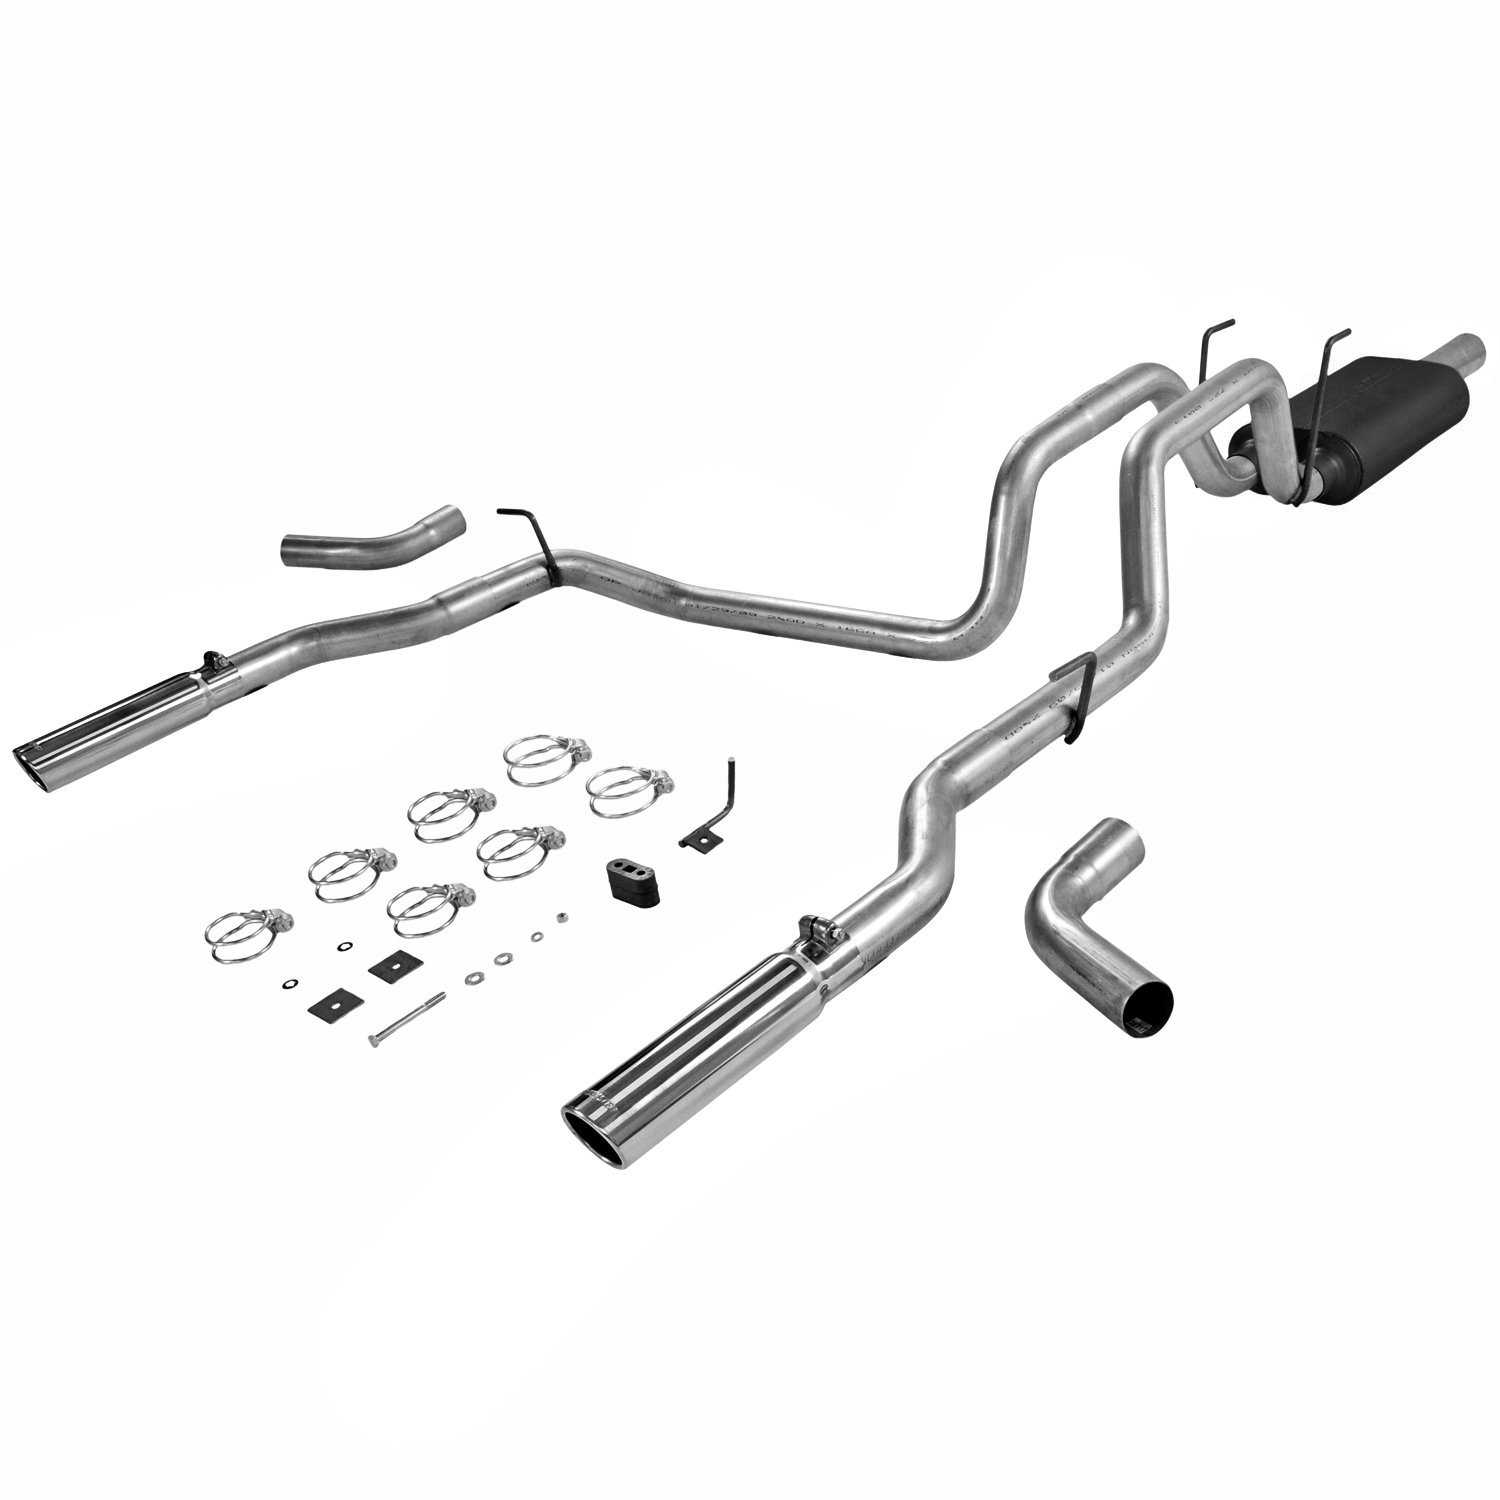 Flowmaster 17424: American Thunder Cat-Back Exhaust System